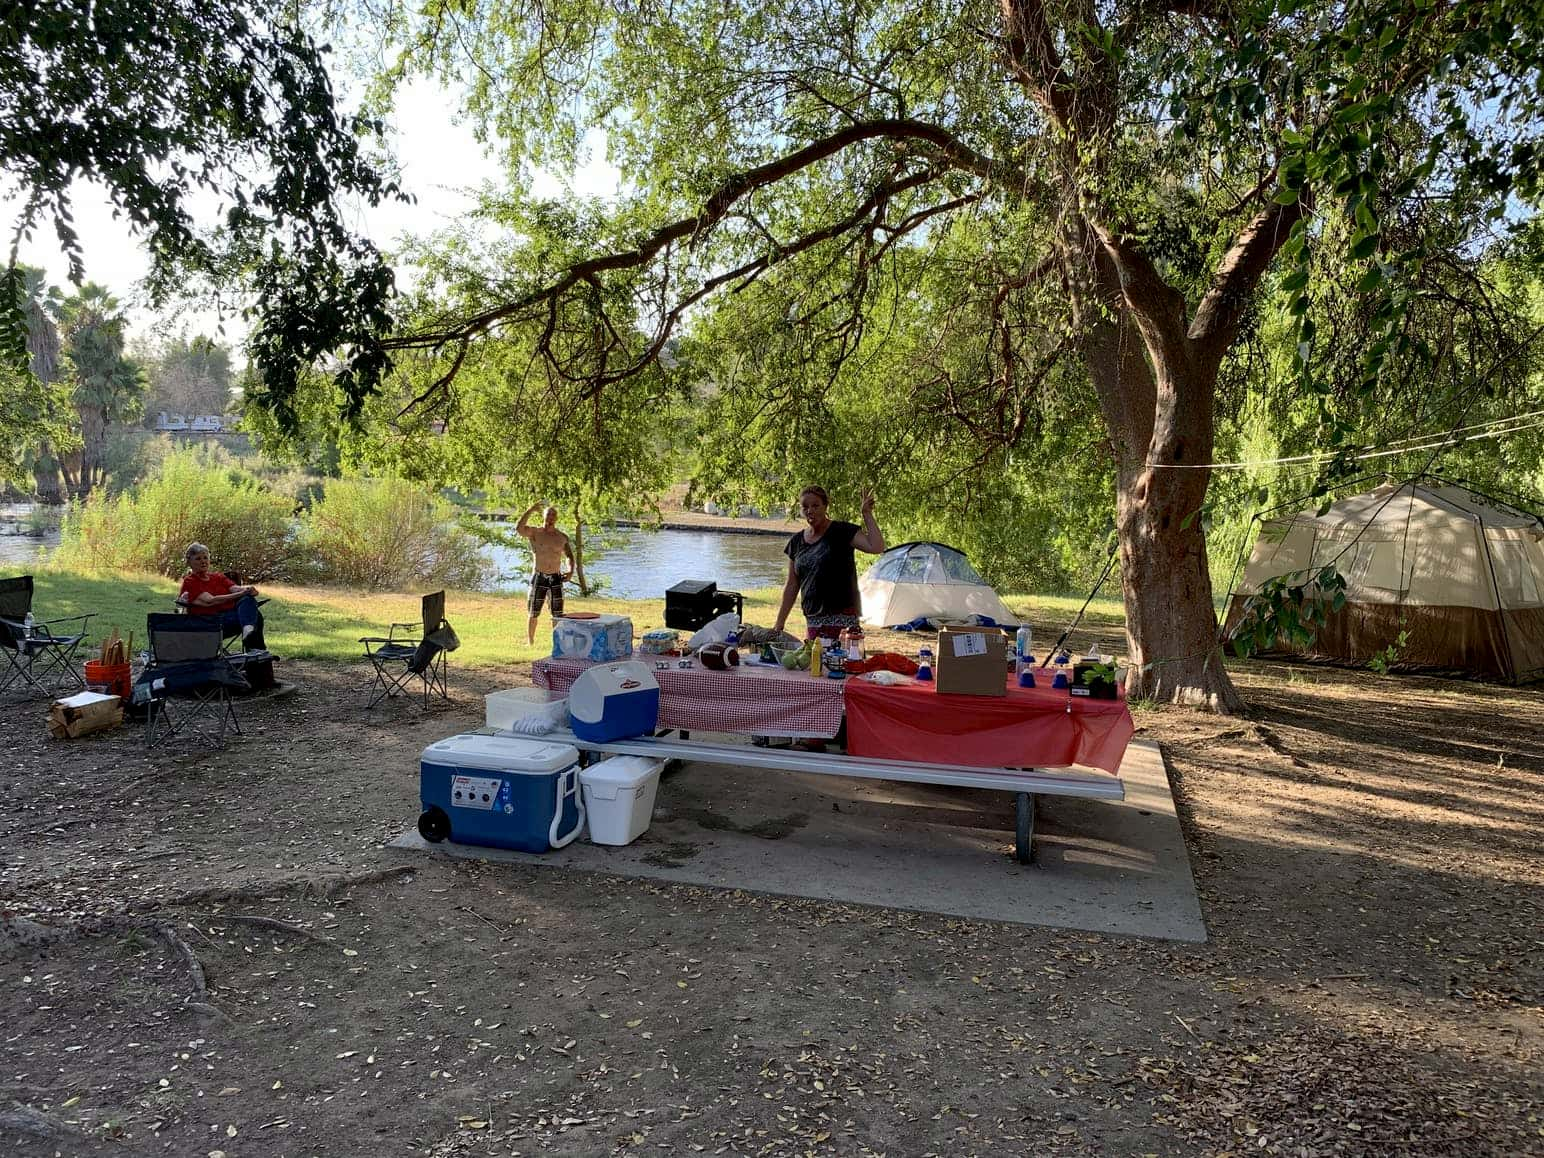 Campsite with picnic table covered in food and coolers beside a the Kern River in California.